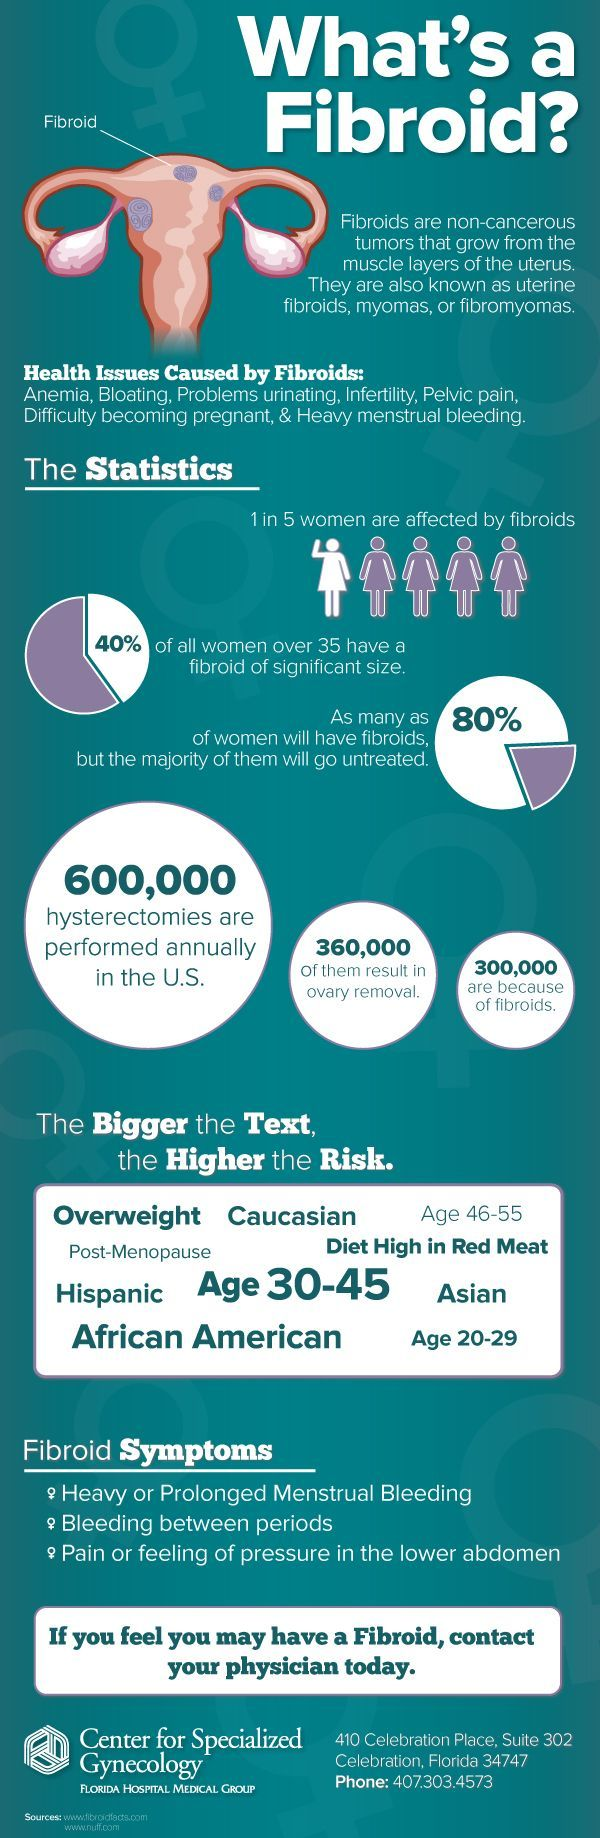 Did you know up to 50% of hysterectomies are caused by Uterine Fibroids! Get the facts about fibroids with this infographic.